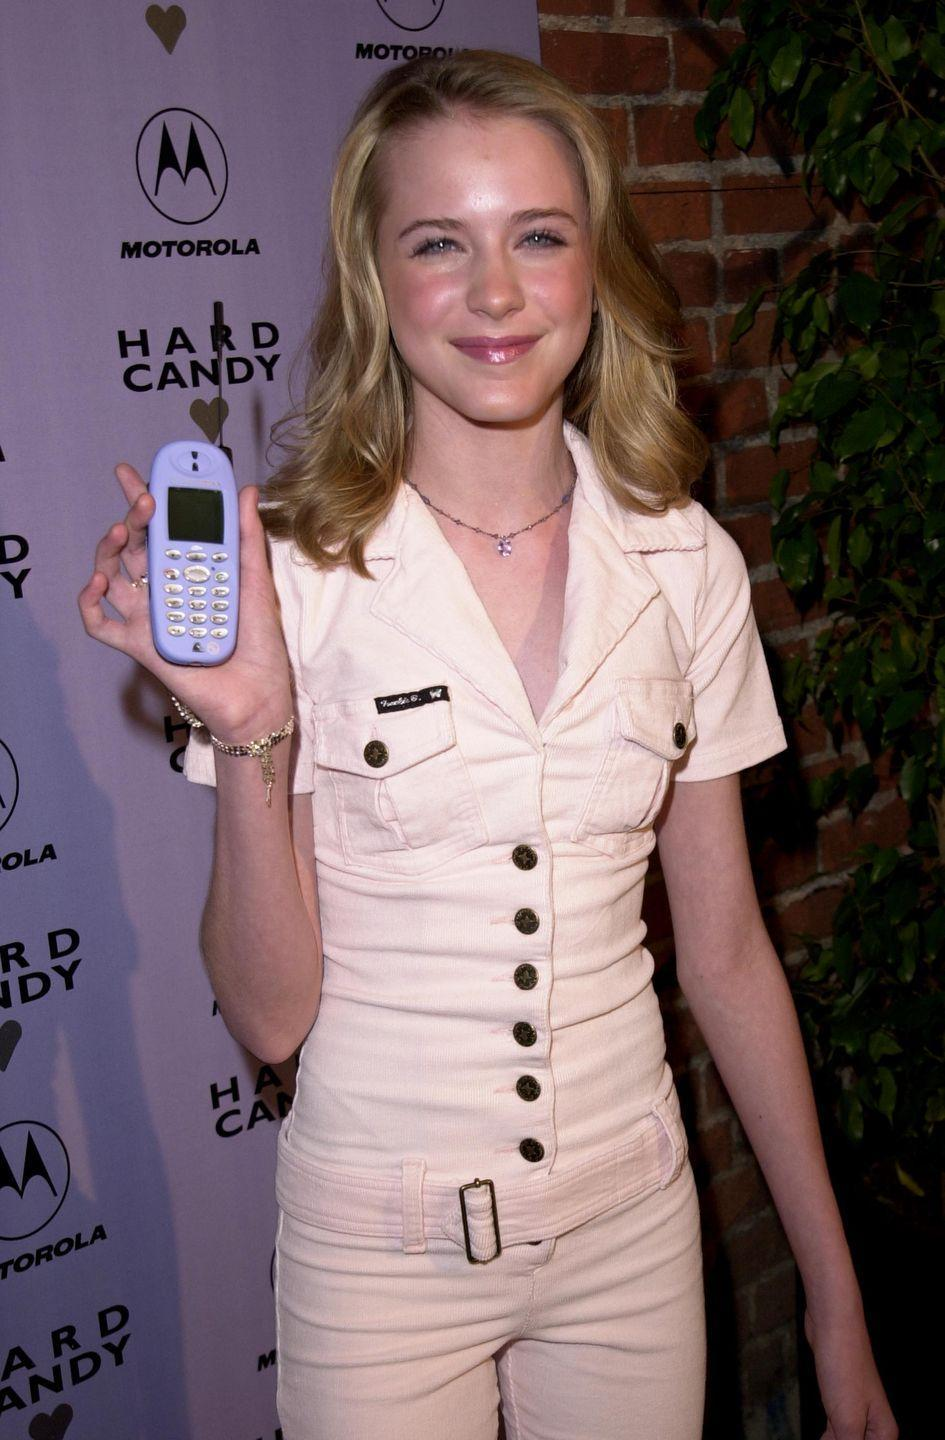 <p>This was at a party commemorating the Motorola-Hard Candy phone because that's a thing that could happen before 9/11.</p>